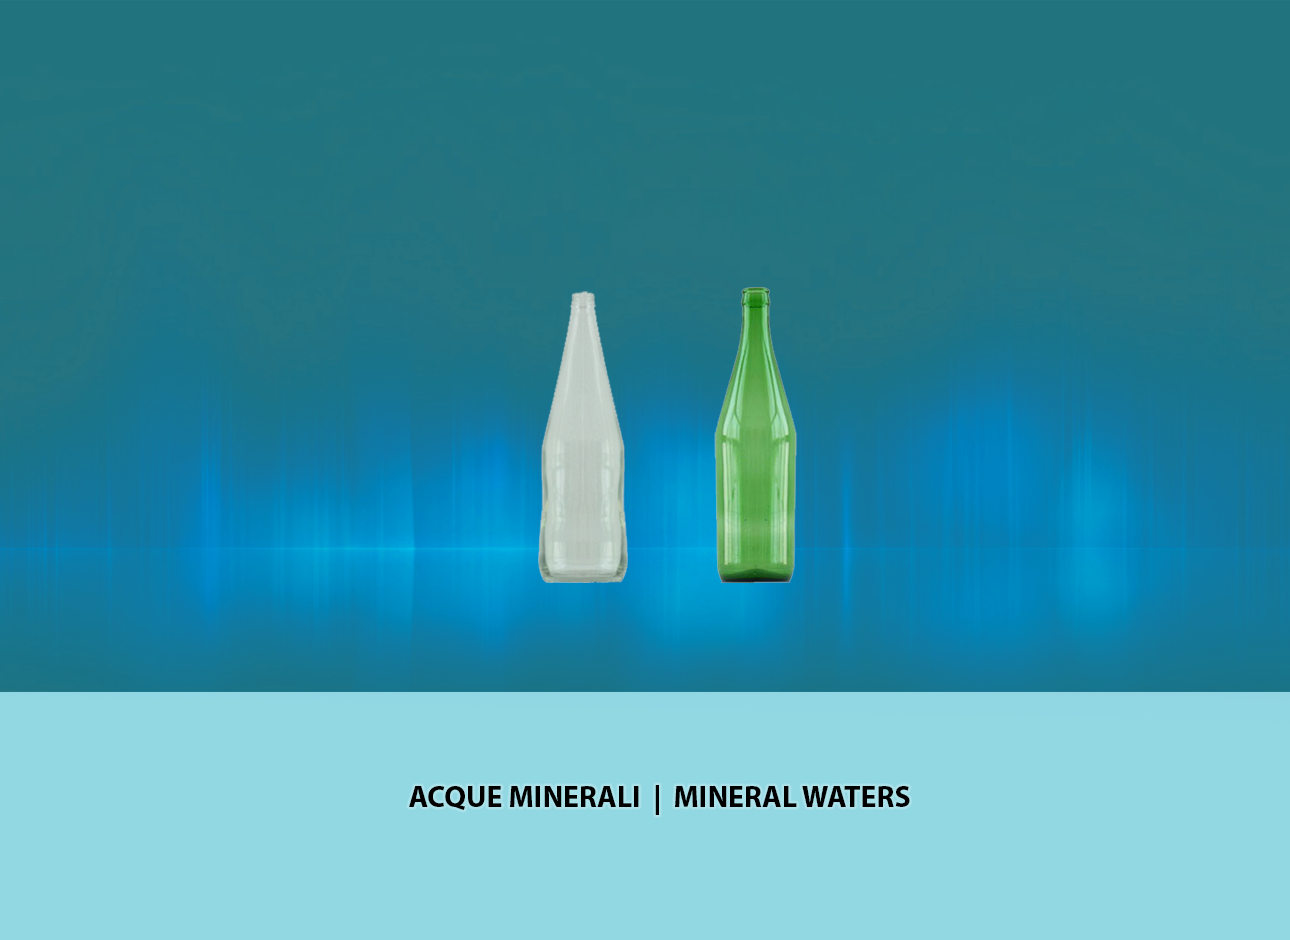 acqueminerali-mineralwaters